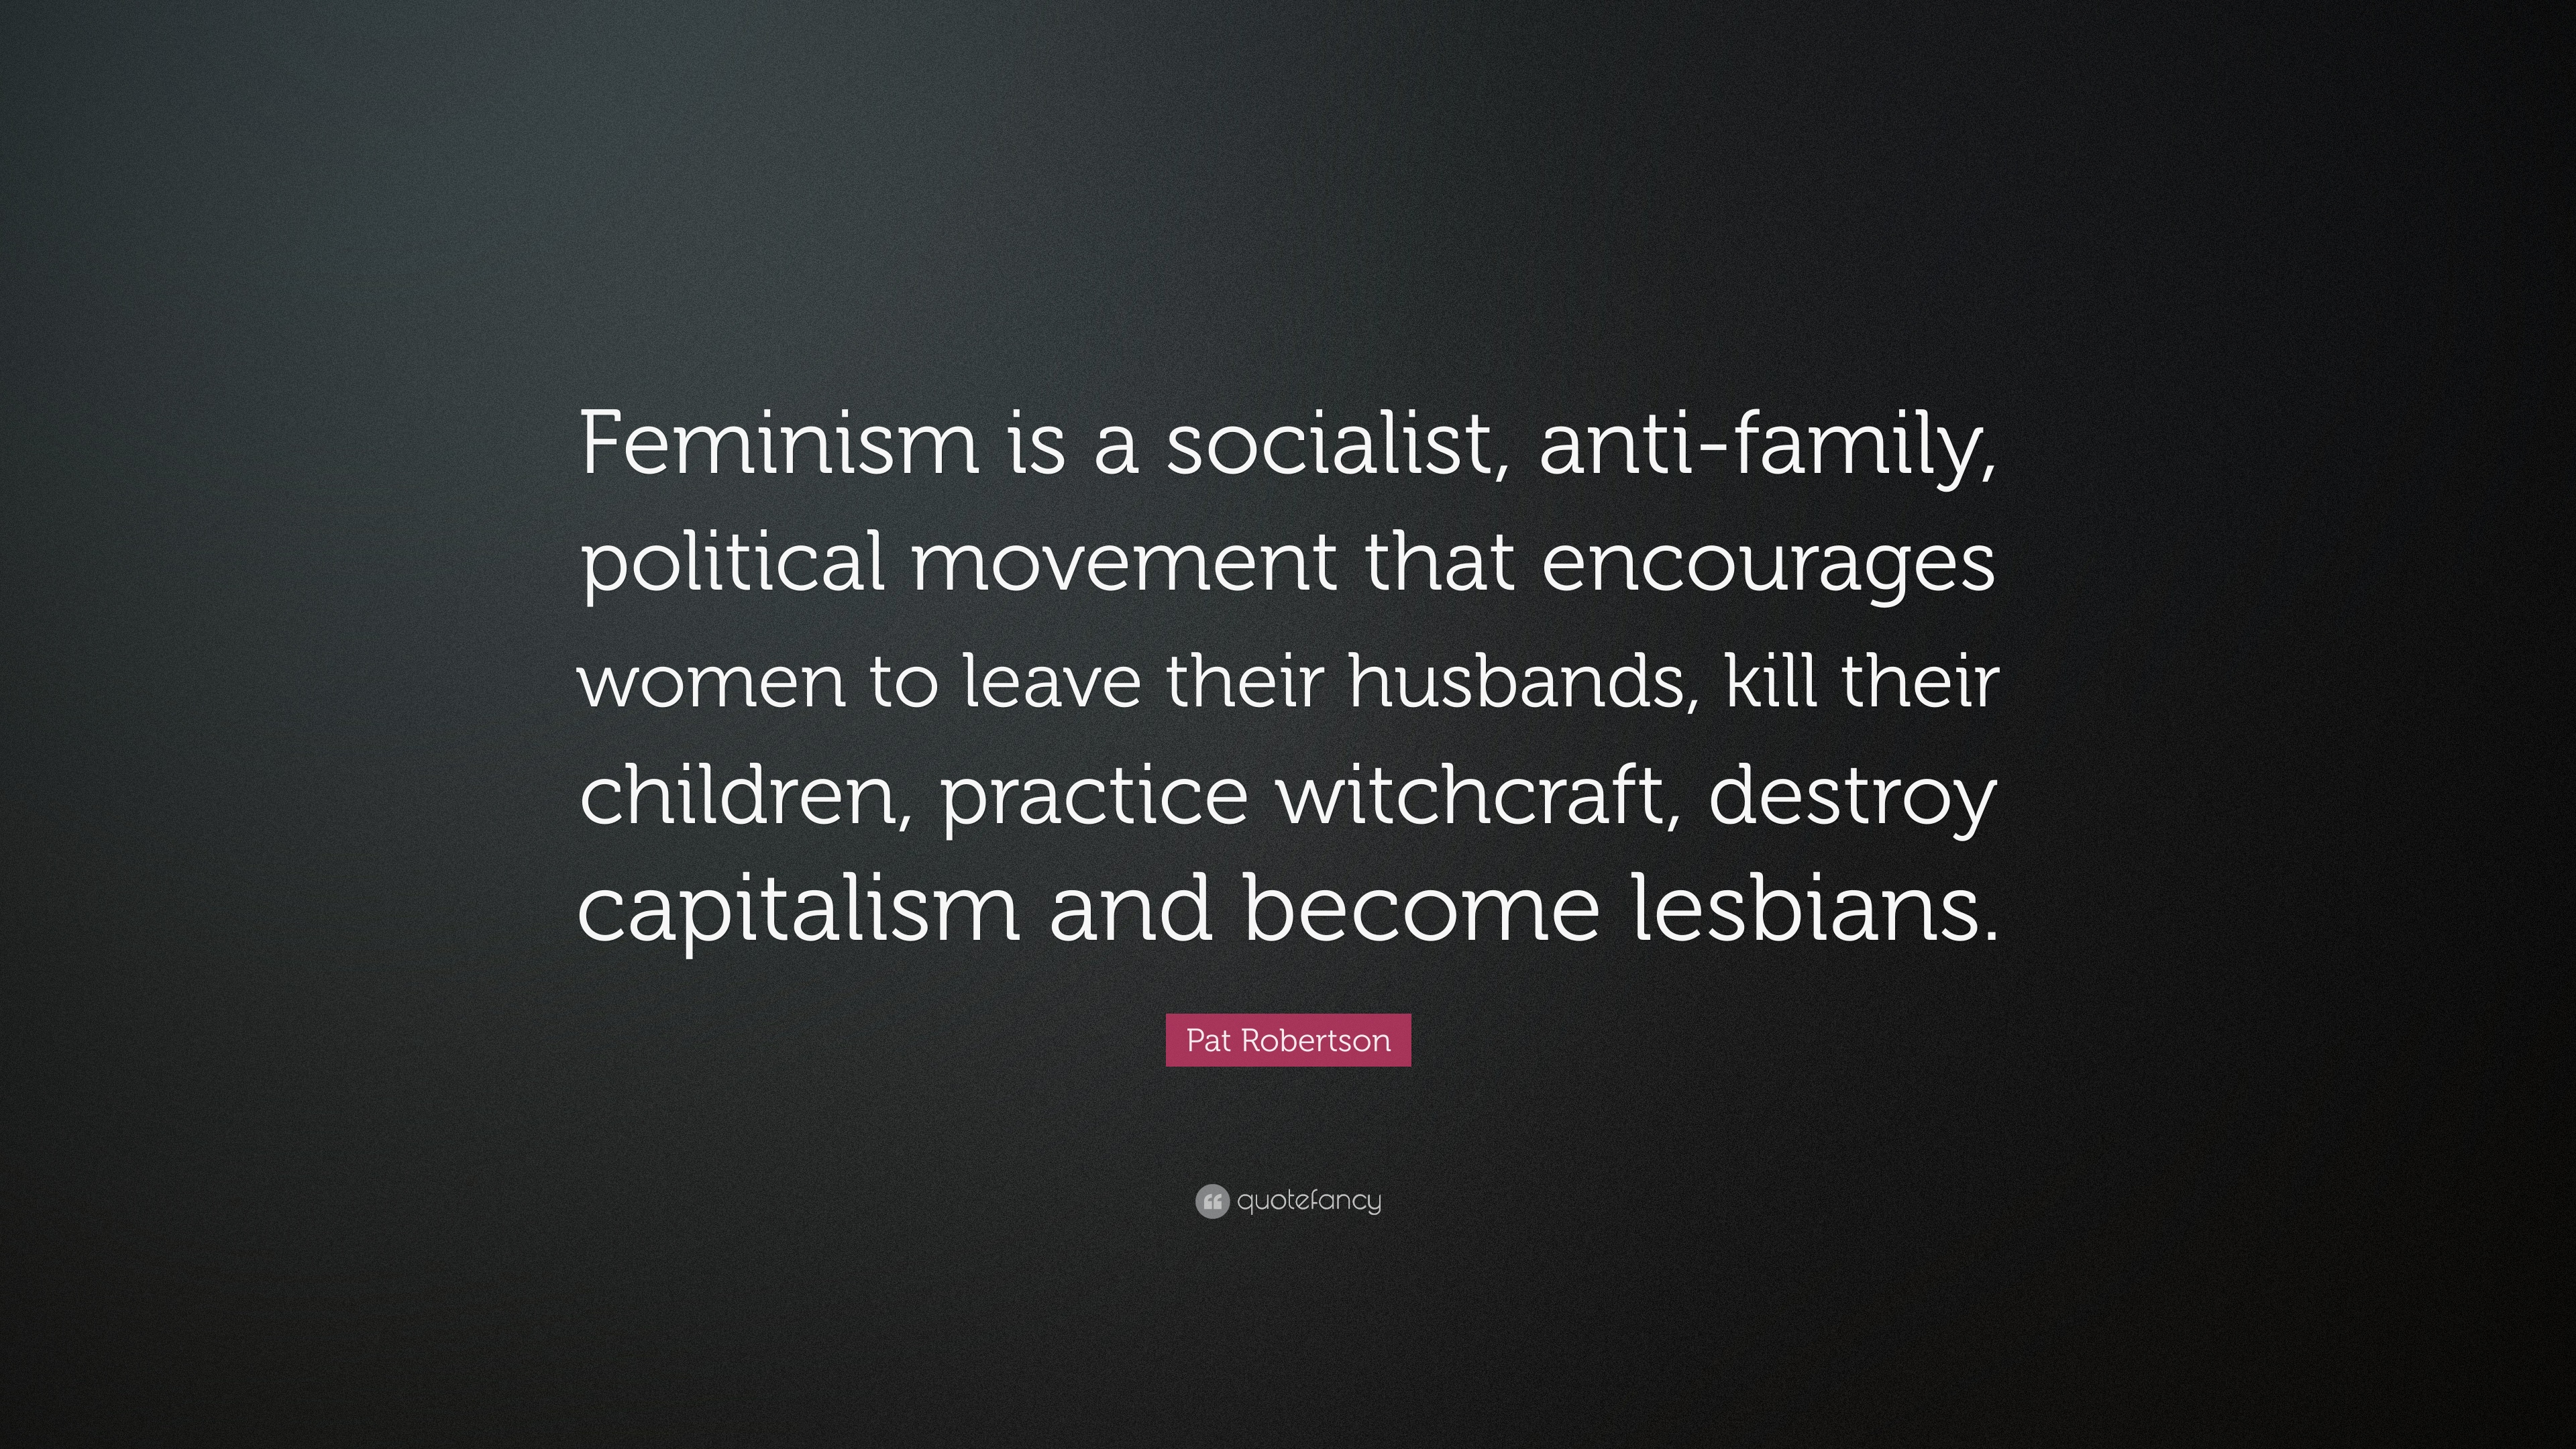 pat robertson quote feminism is a socialist anti family political movement